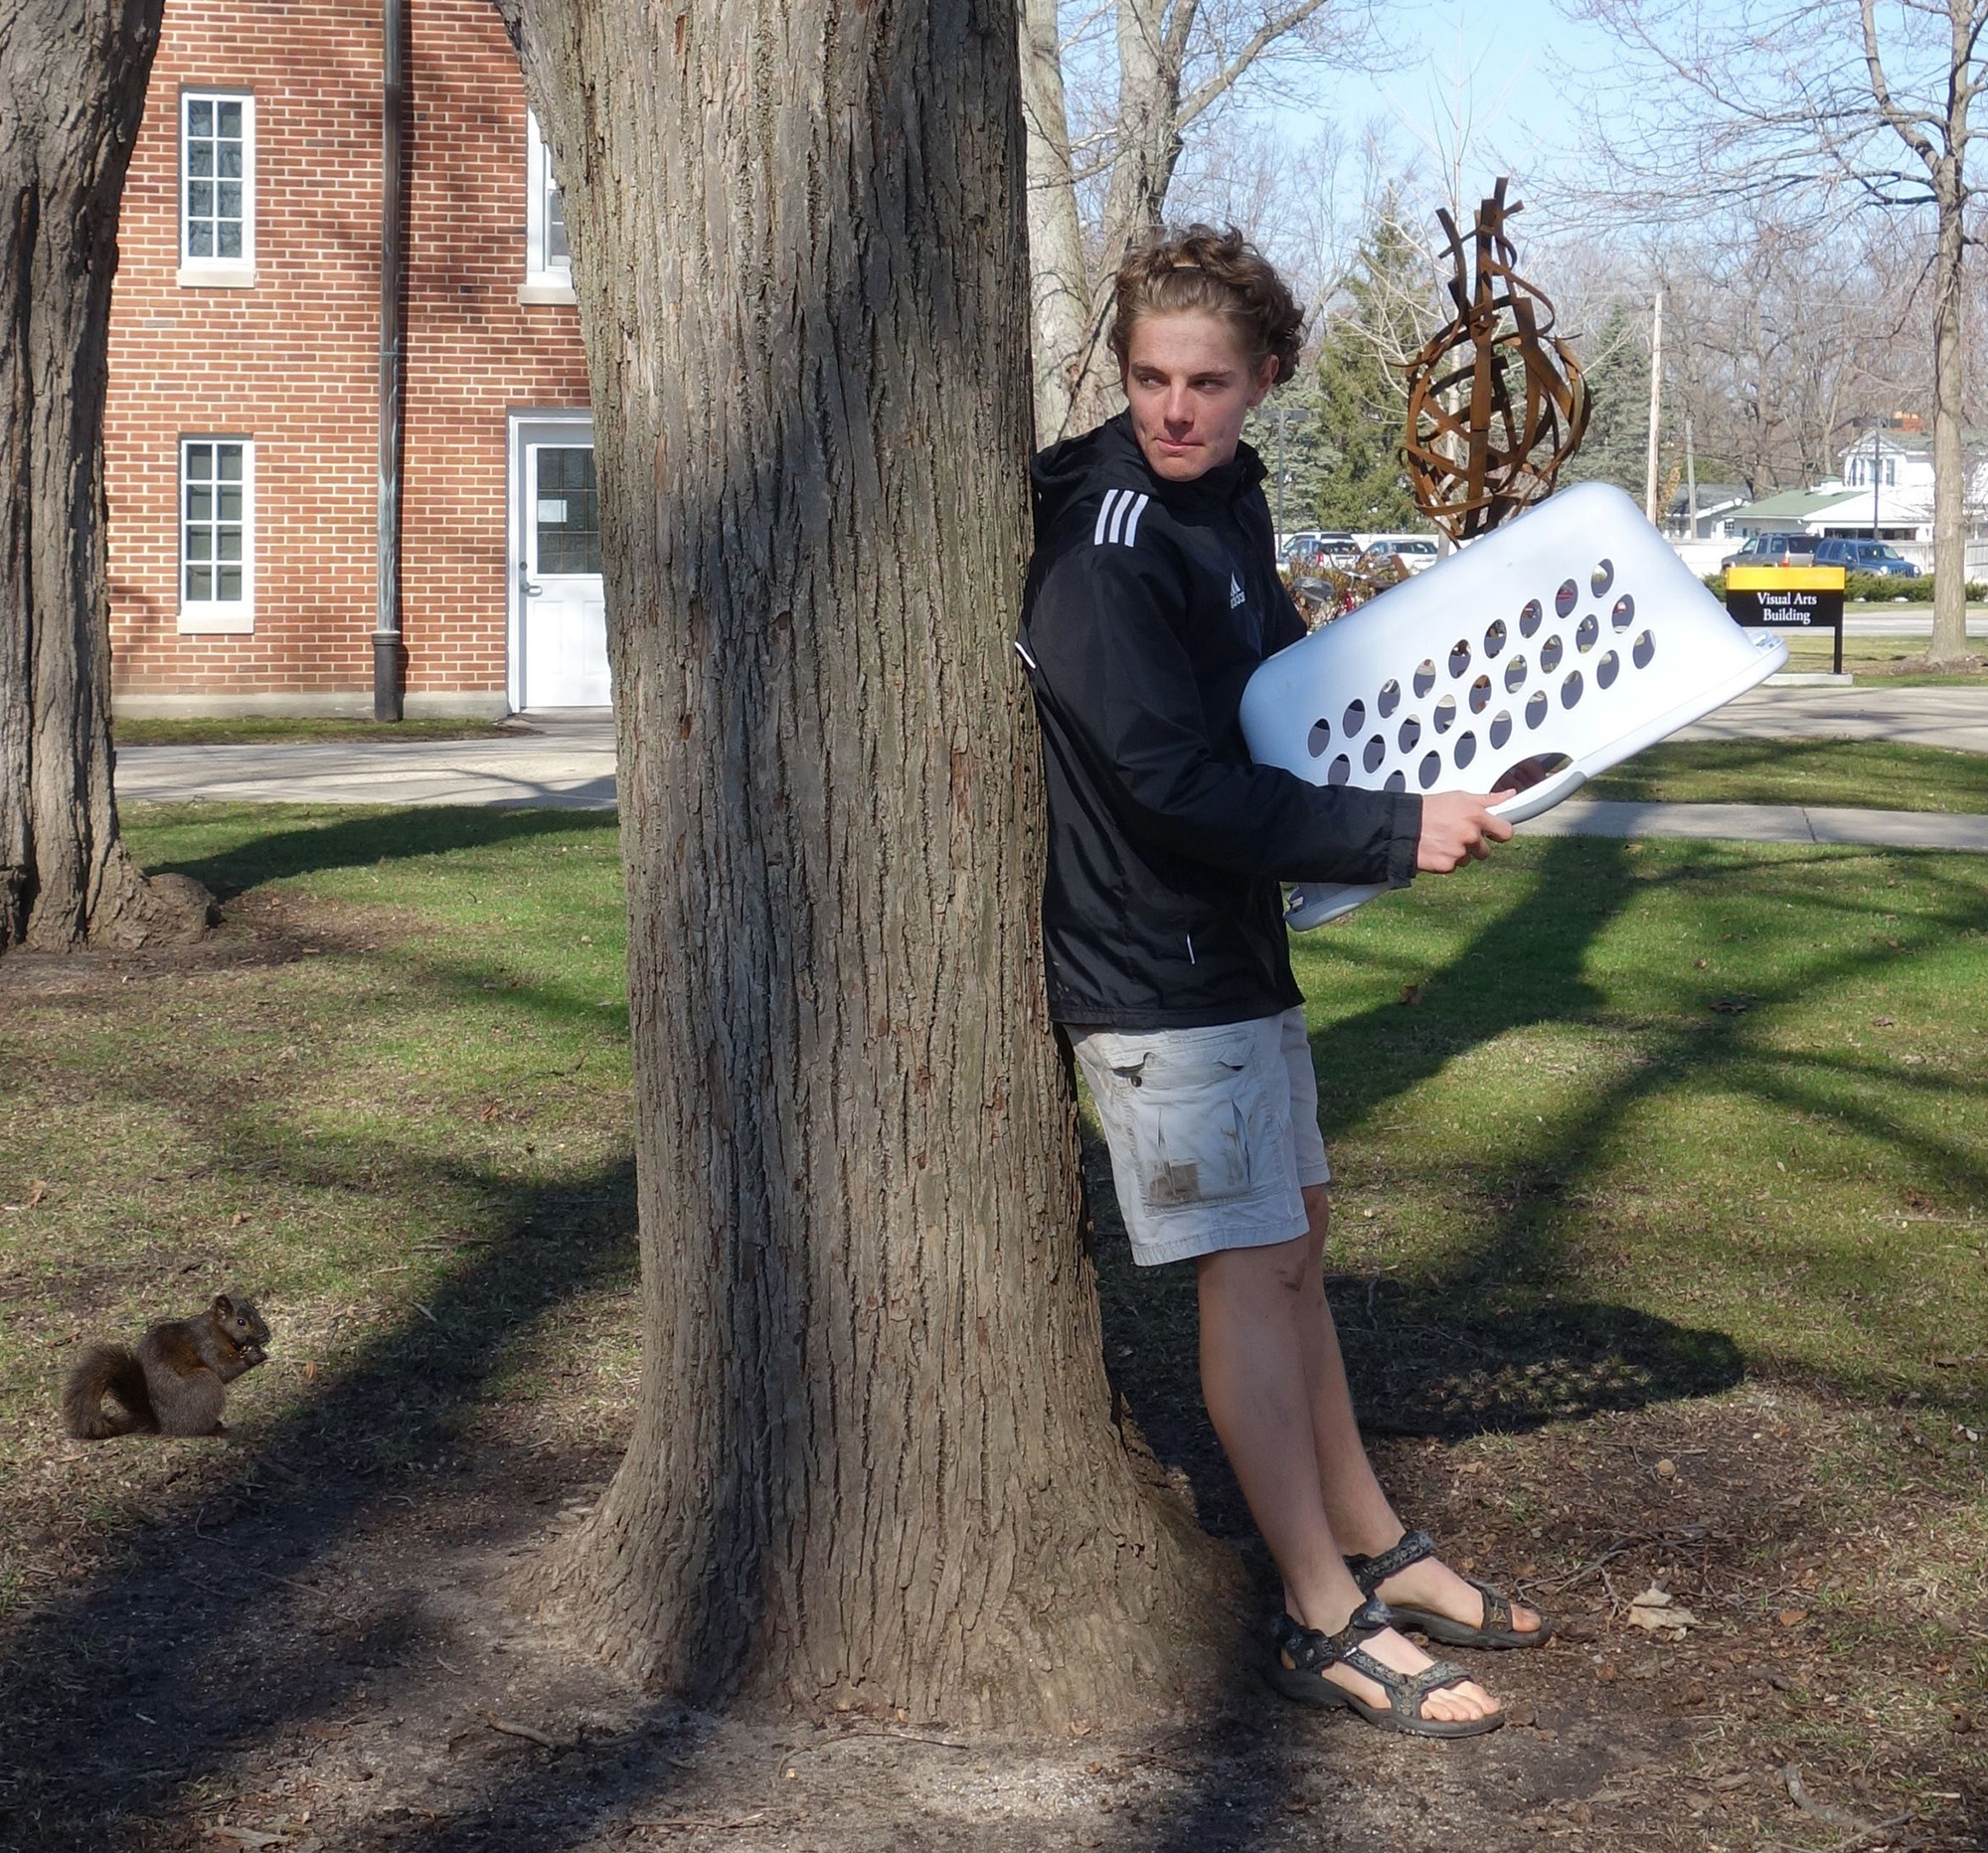 David Jantz hides behind a tree with a laundry basket, planning to jump out and capture the squirrel behind the tree